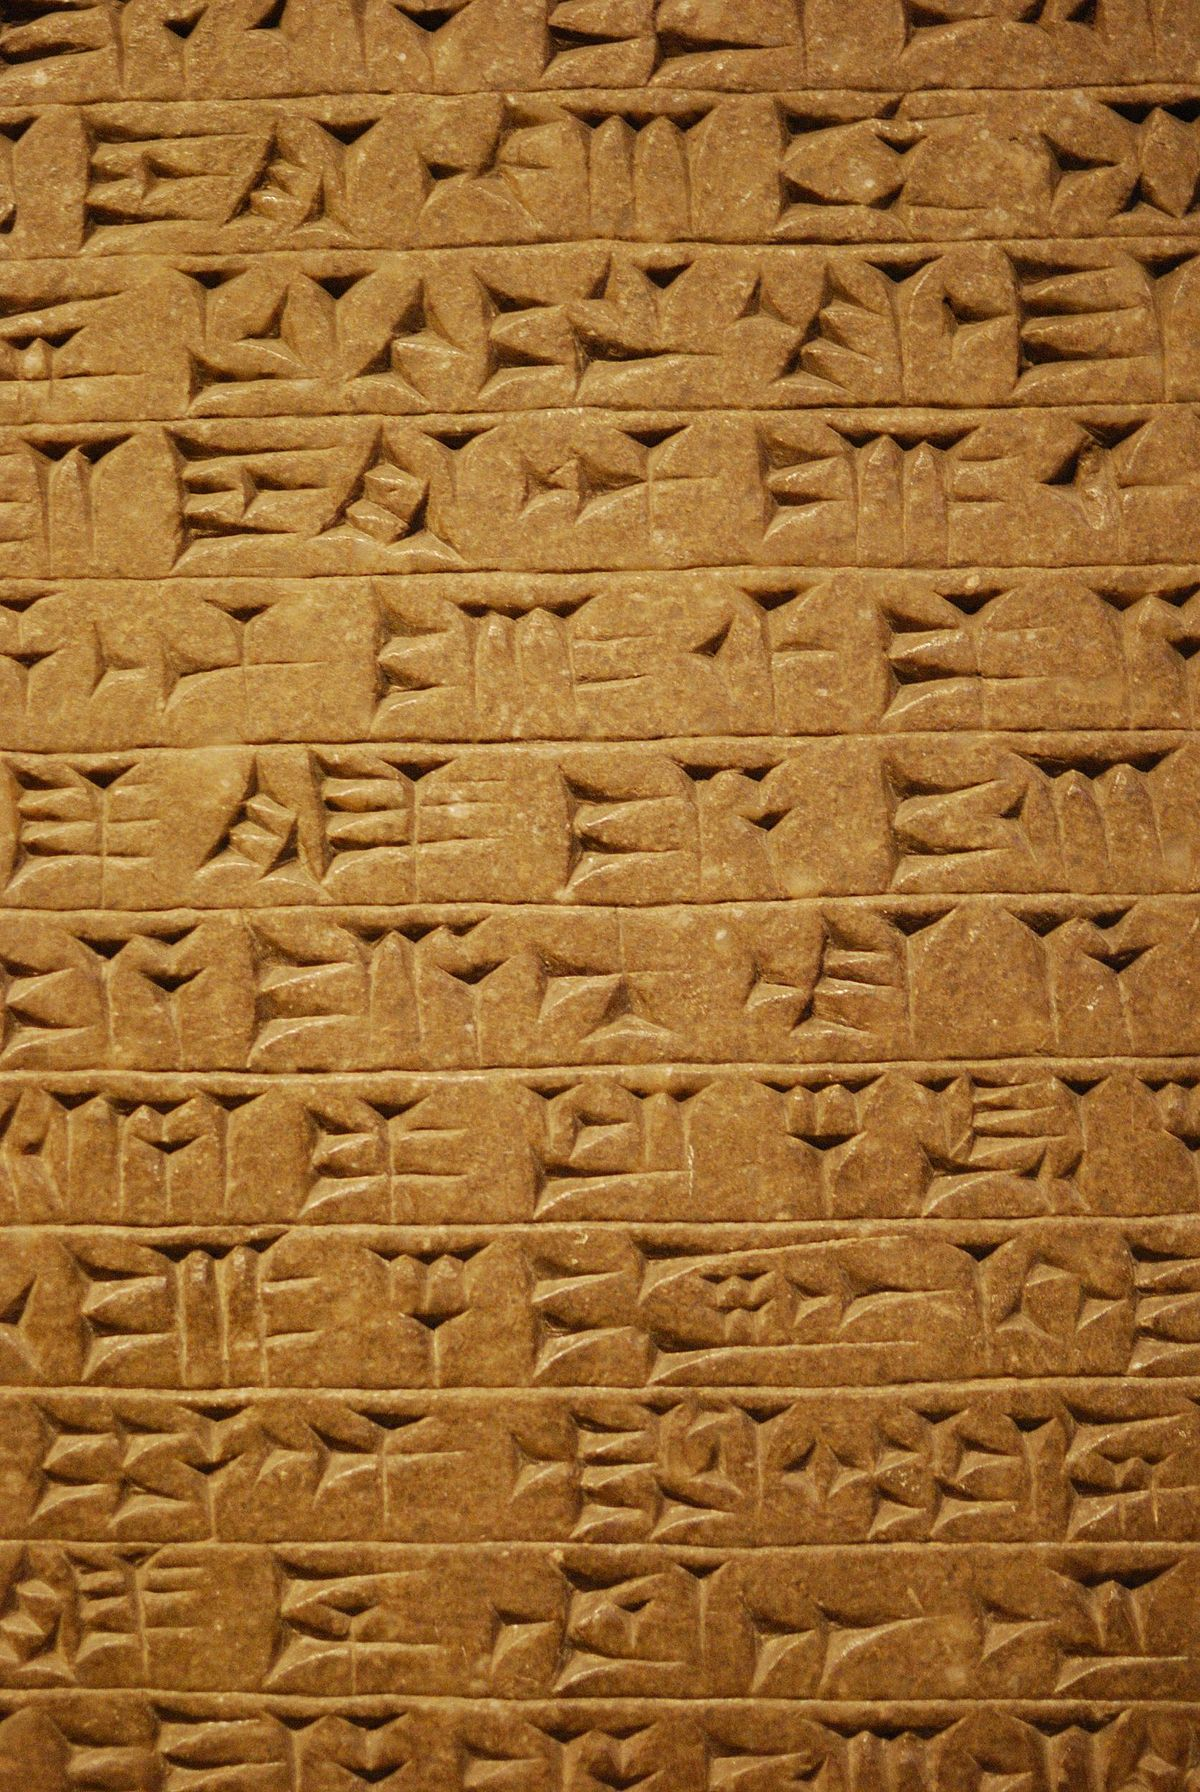 Assyrian language: Past and Present